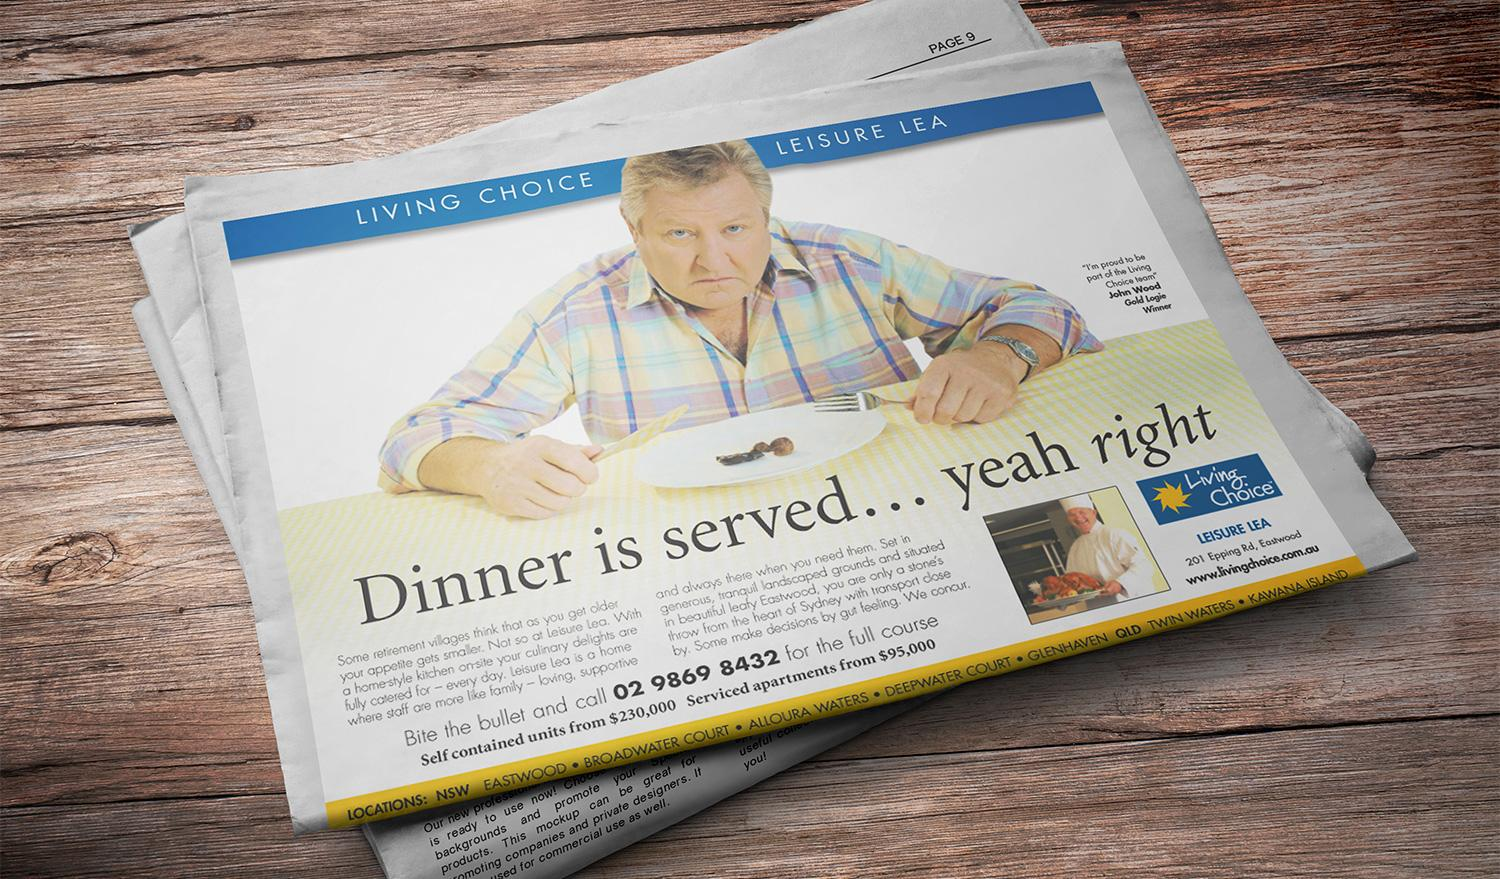 Living Choice press ad - the dinner is served... yeah right!